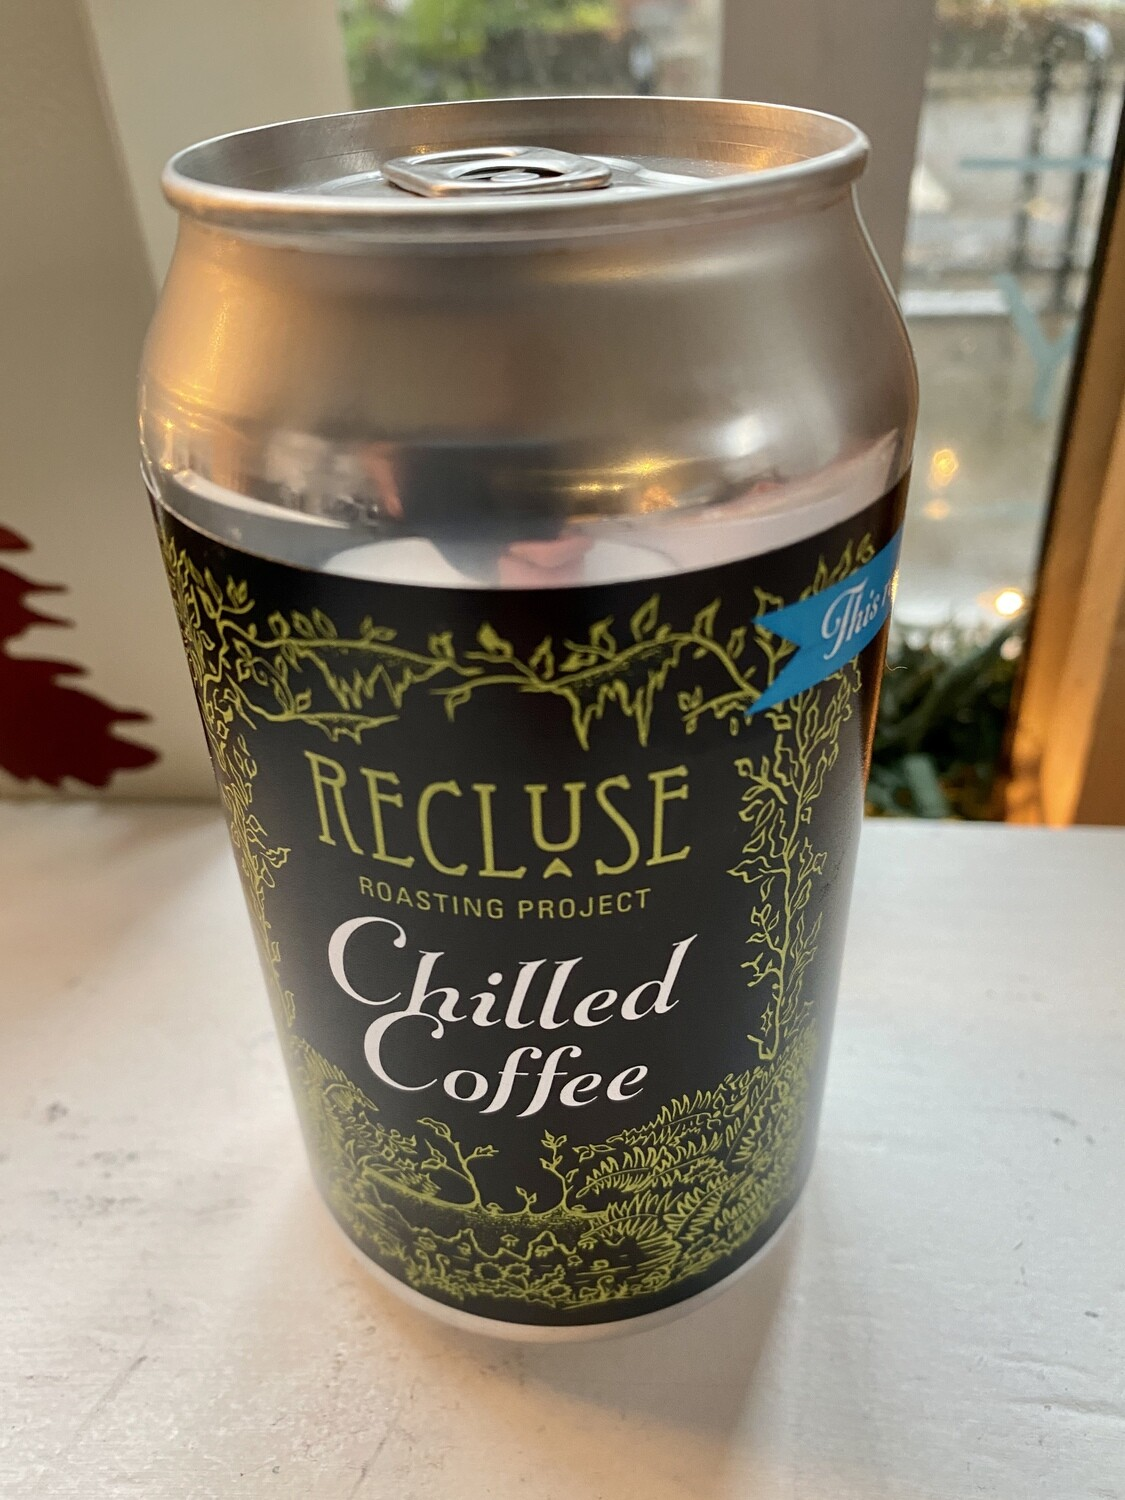 Recluse Chilled Coffee